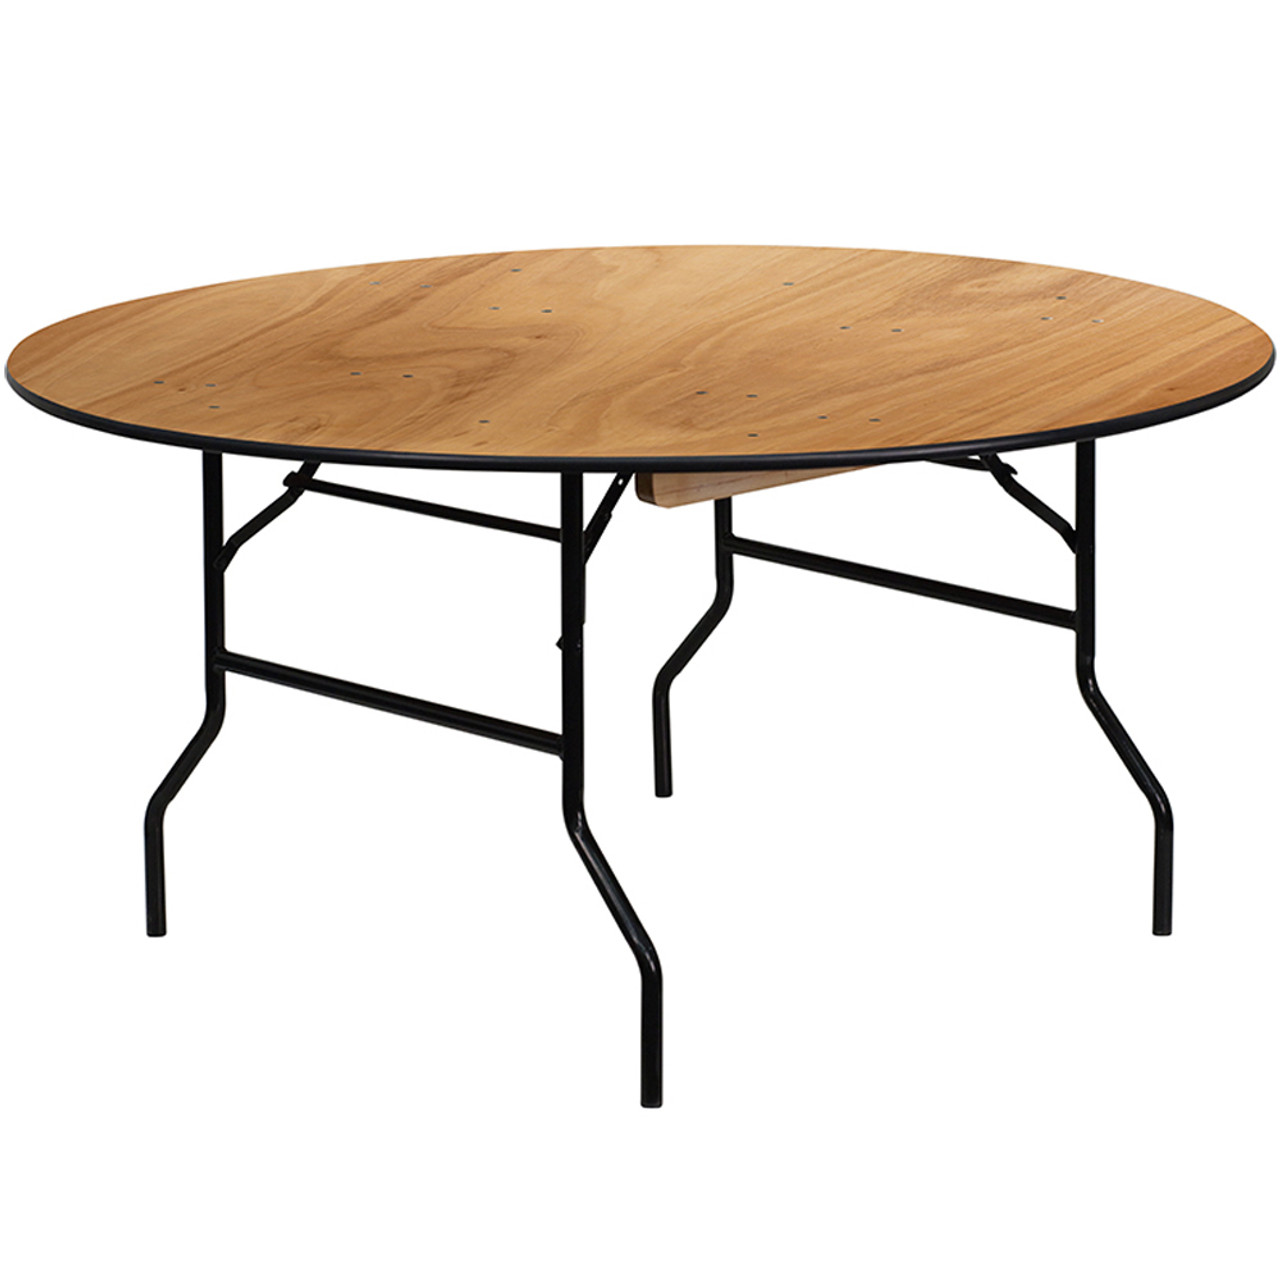 - 10-pack: 60-inch (5 Ft.) Round Wood Folding Banquet Tables [10-YT